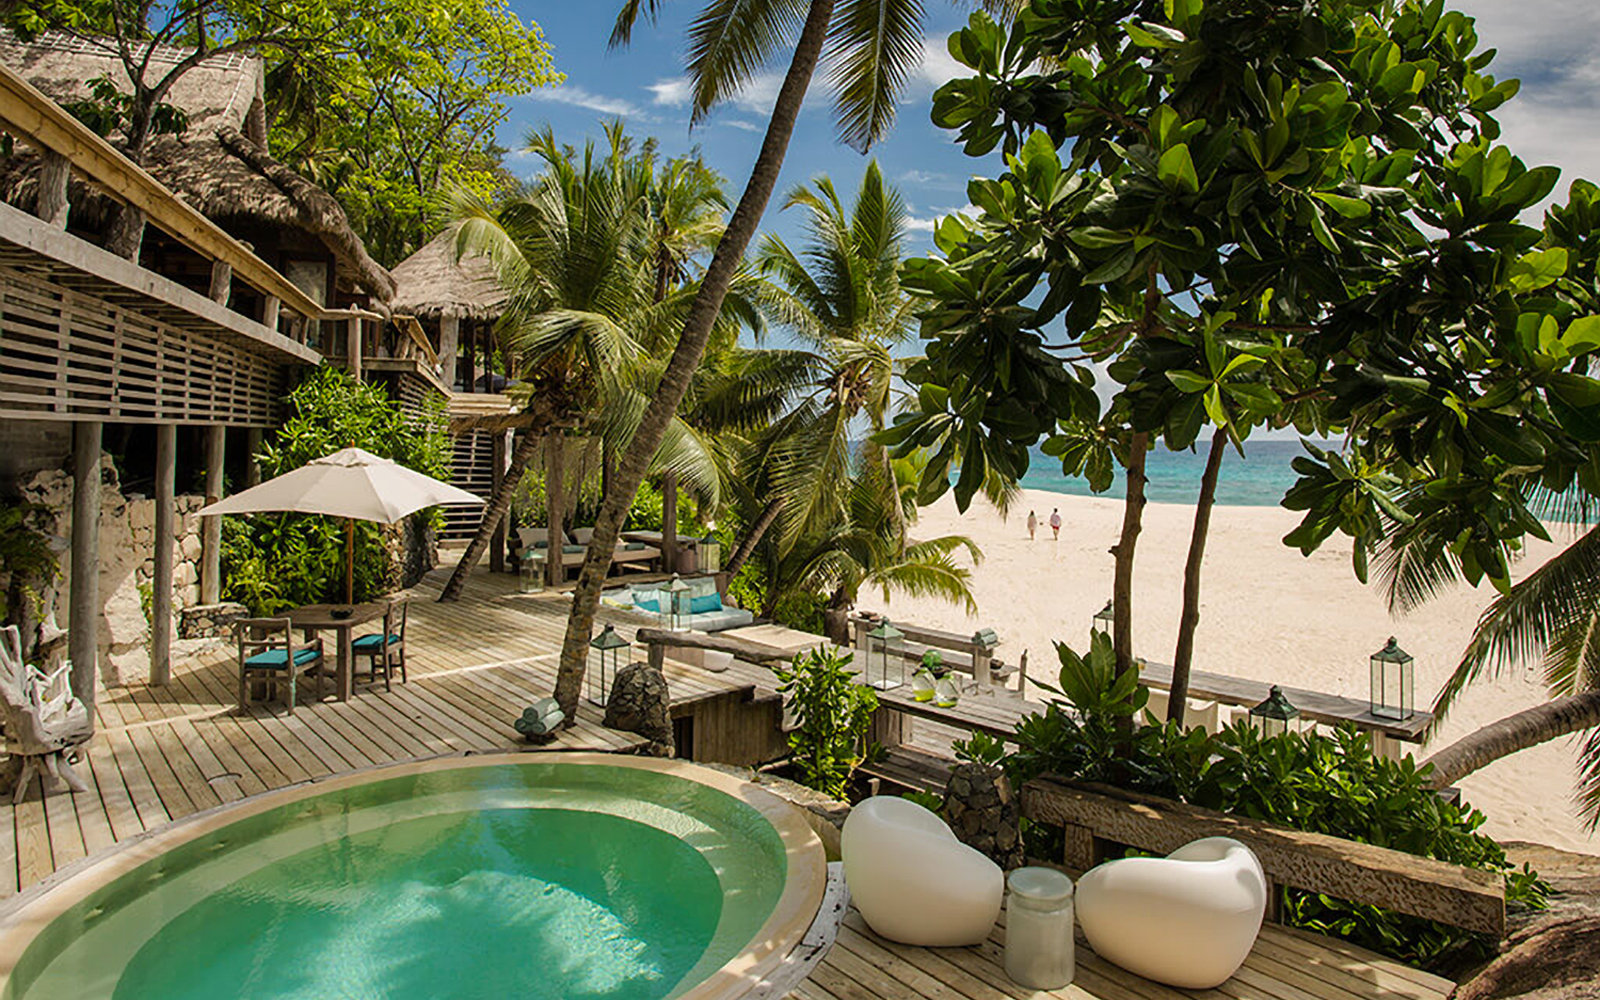 North Island resort, in the Seychelles